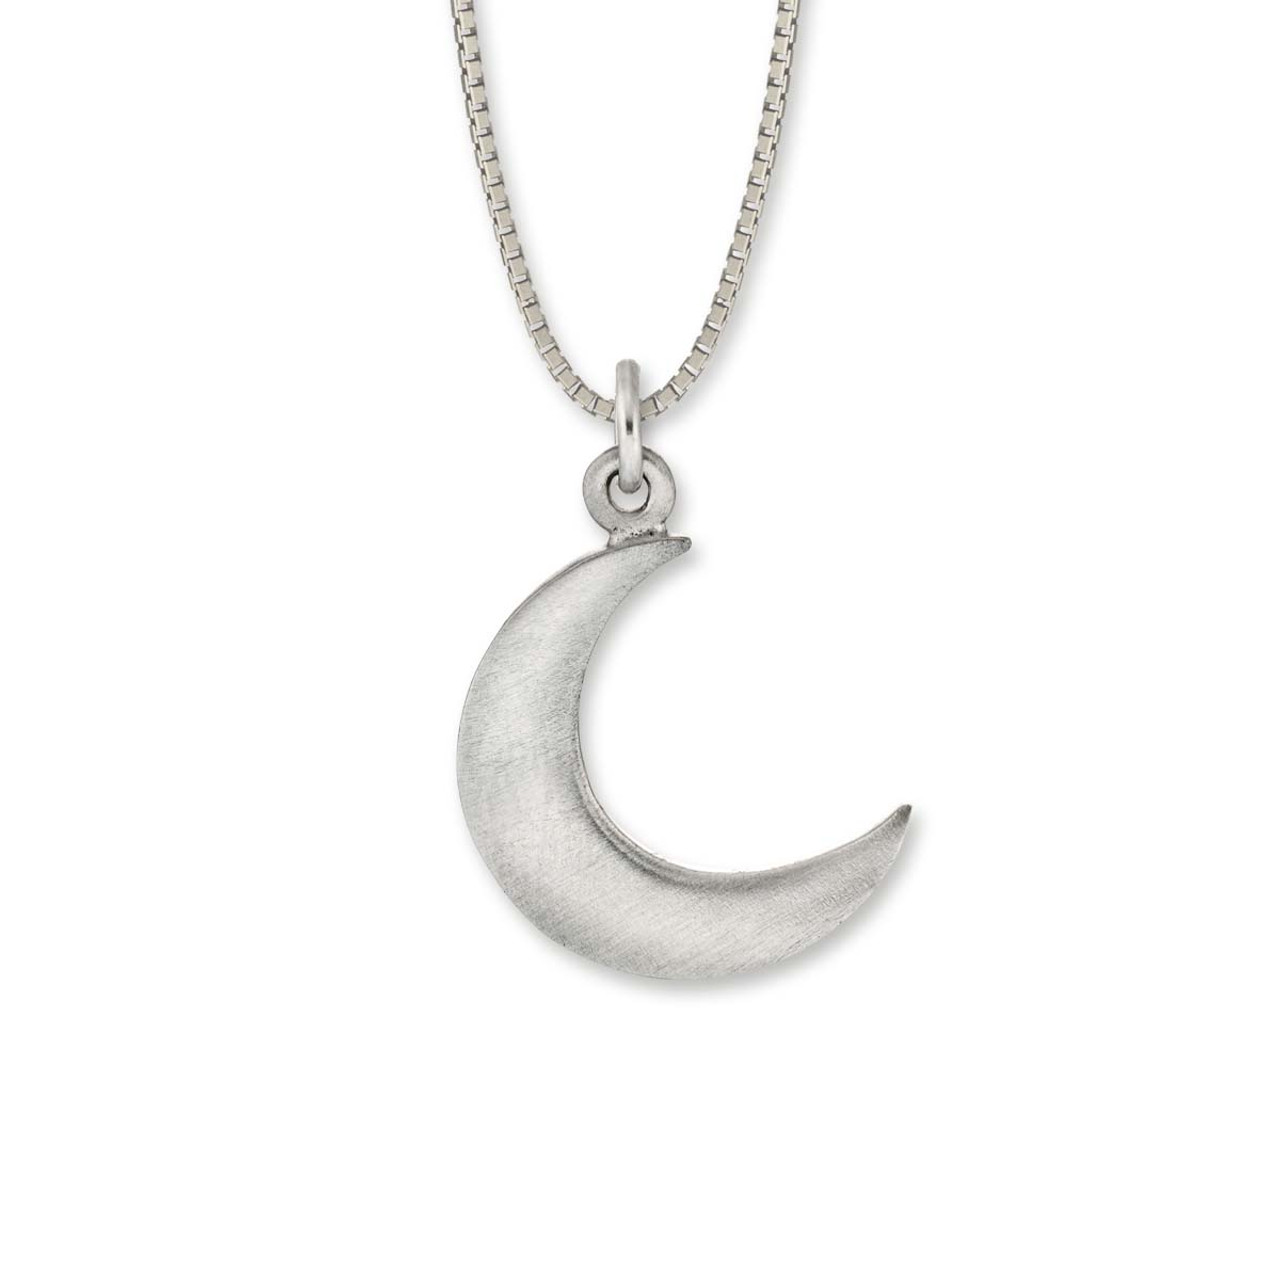 moon rose female image necklaces drop crescent necklace vermeil gold influence pendant